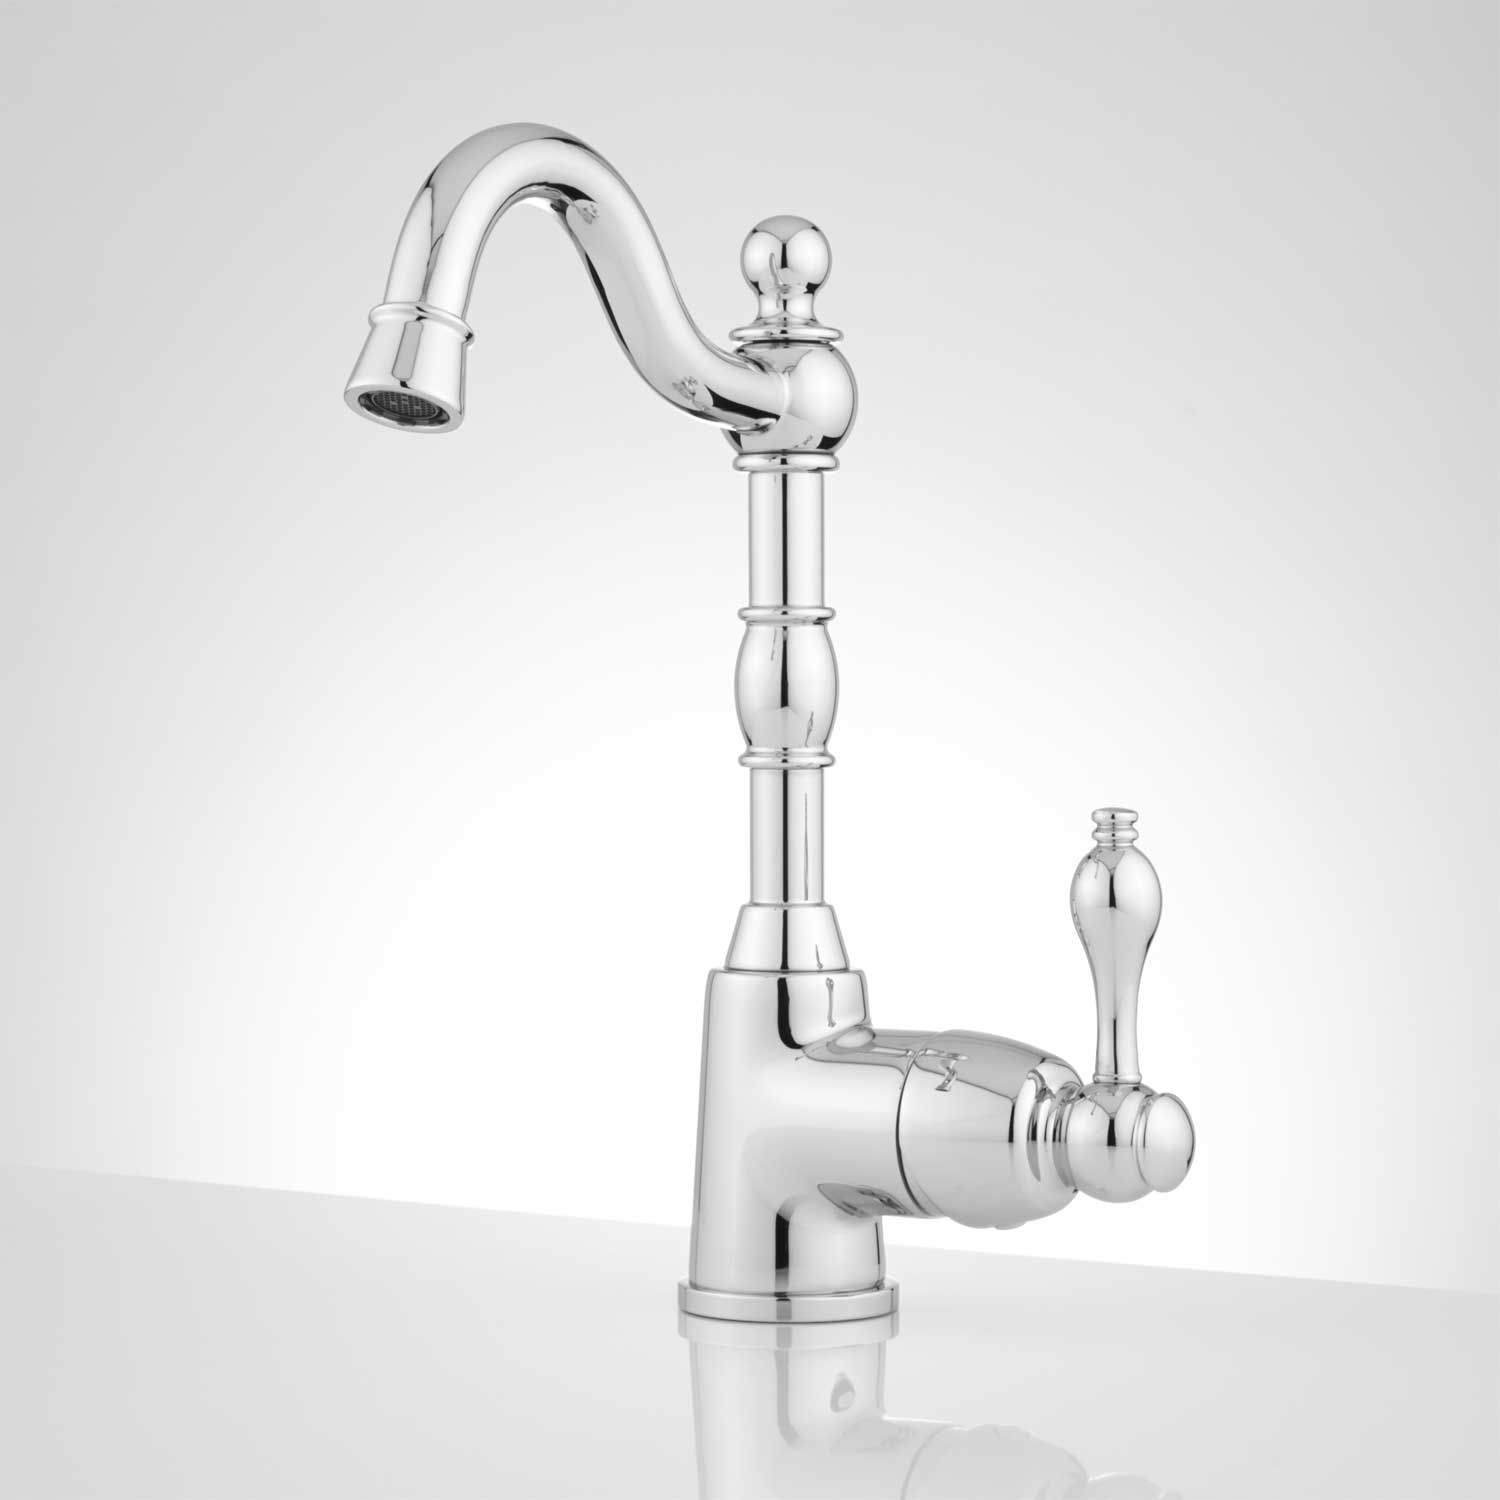 Moccasin Single Hole Kitchen Faucet  Kitchen Faucets Moccasins Classy Single Hole Kitchen Faucet Inspiration Design